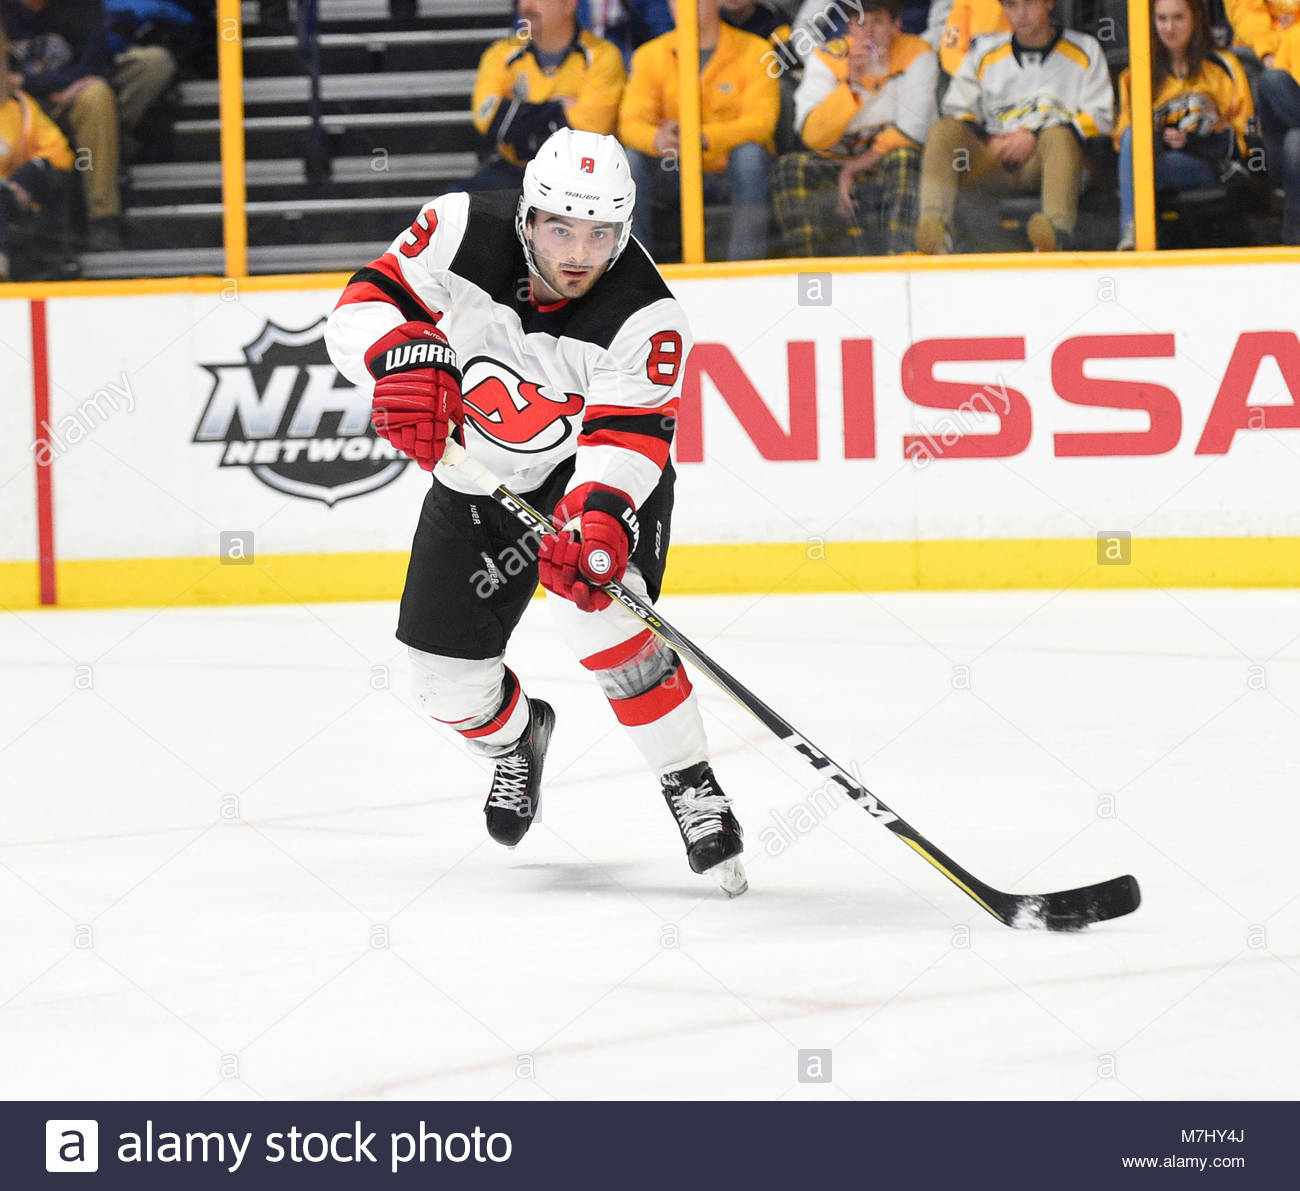 Bridgestone Arena. 10th Mar, 2018. USA New Jersey Devils defenseman Will Butcher (8) skates with the puck against - Stock Image